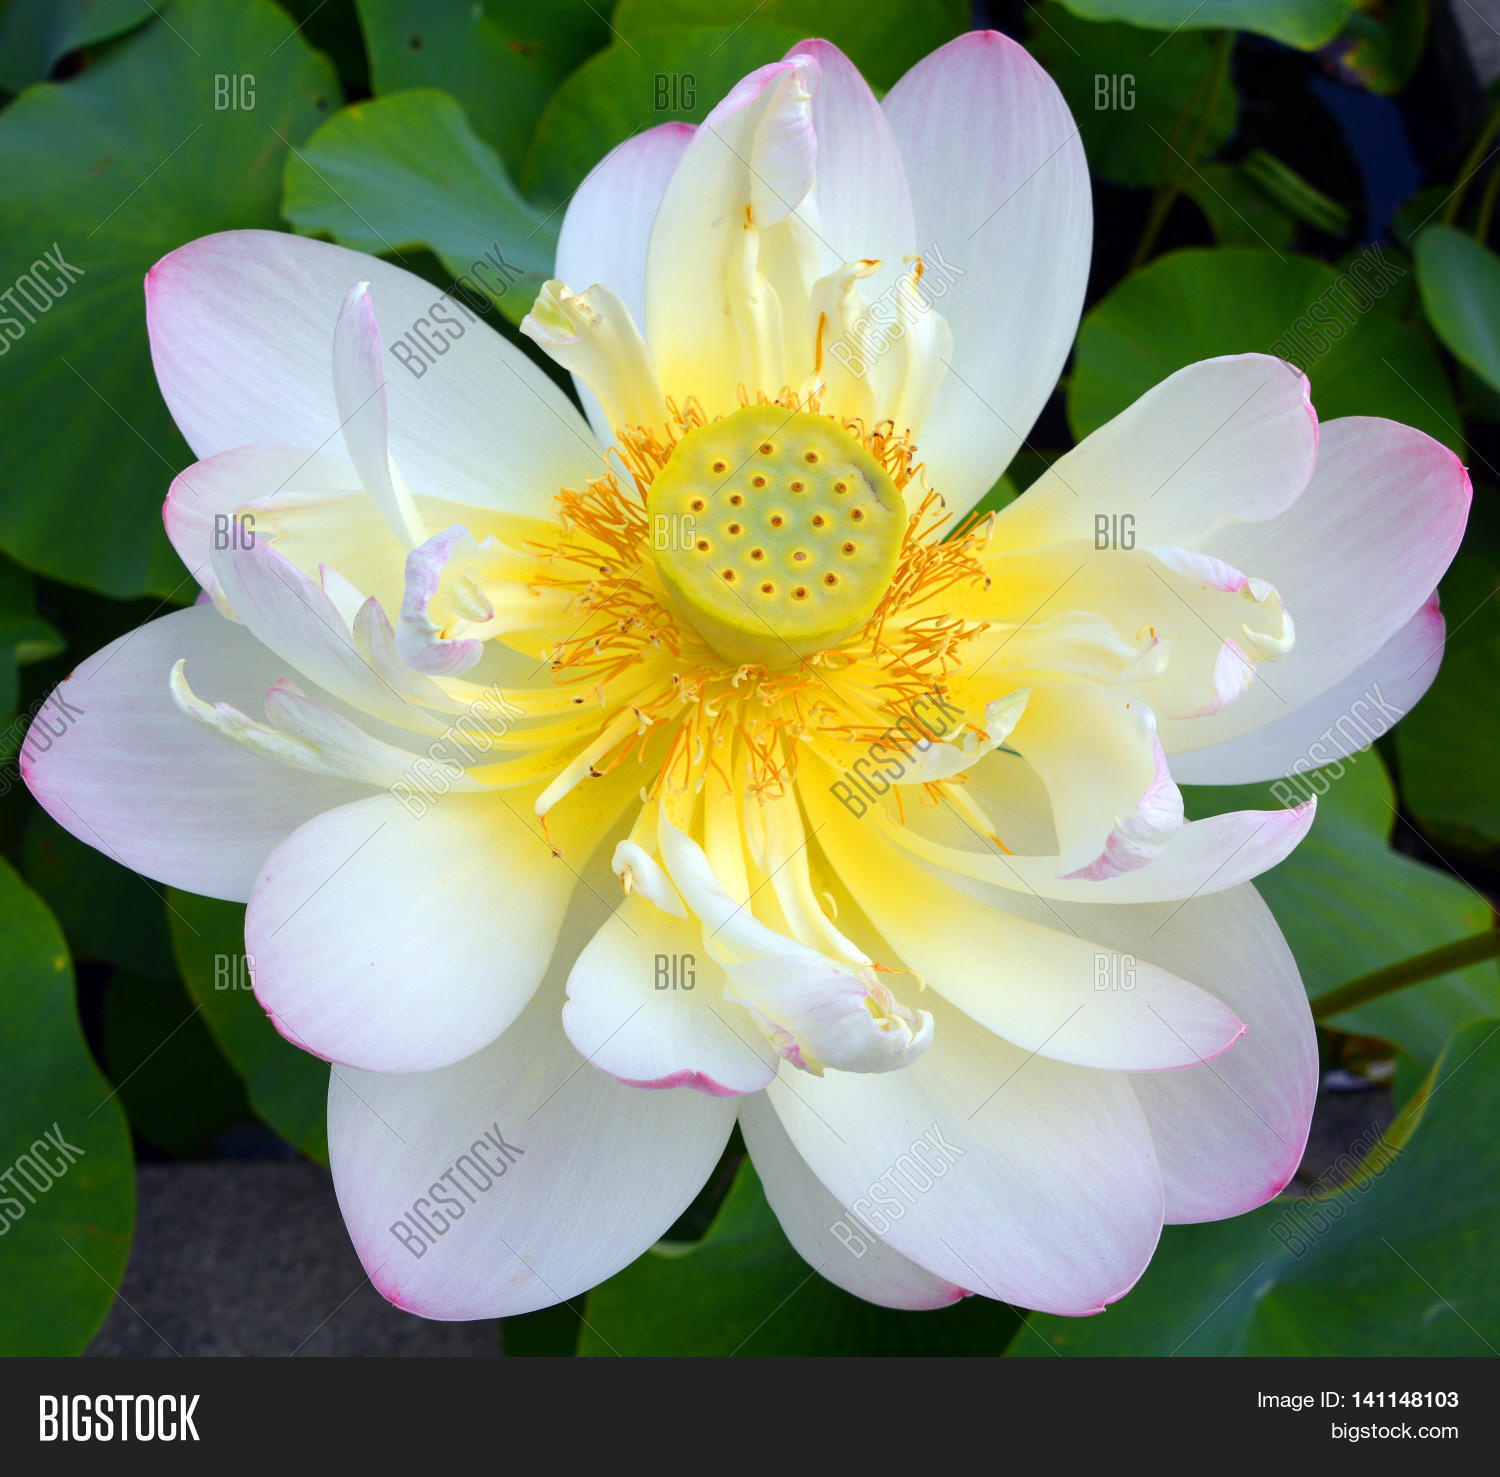 Lotus flower nelumbo nucifera image photo bigstock lotus flower nelumbo nucifera known by a number of names including indian lotus mightylinksfo